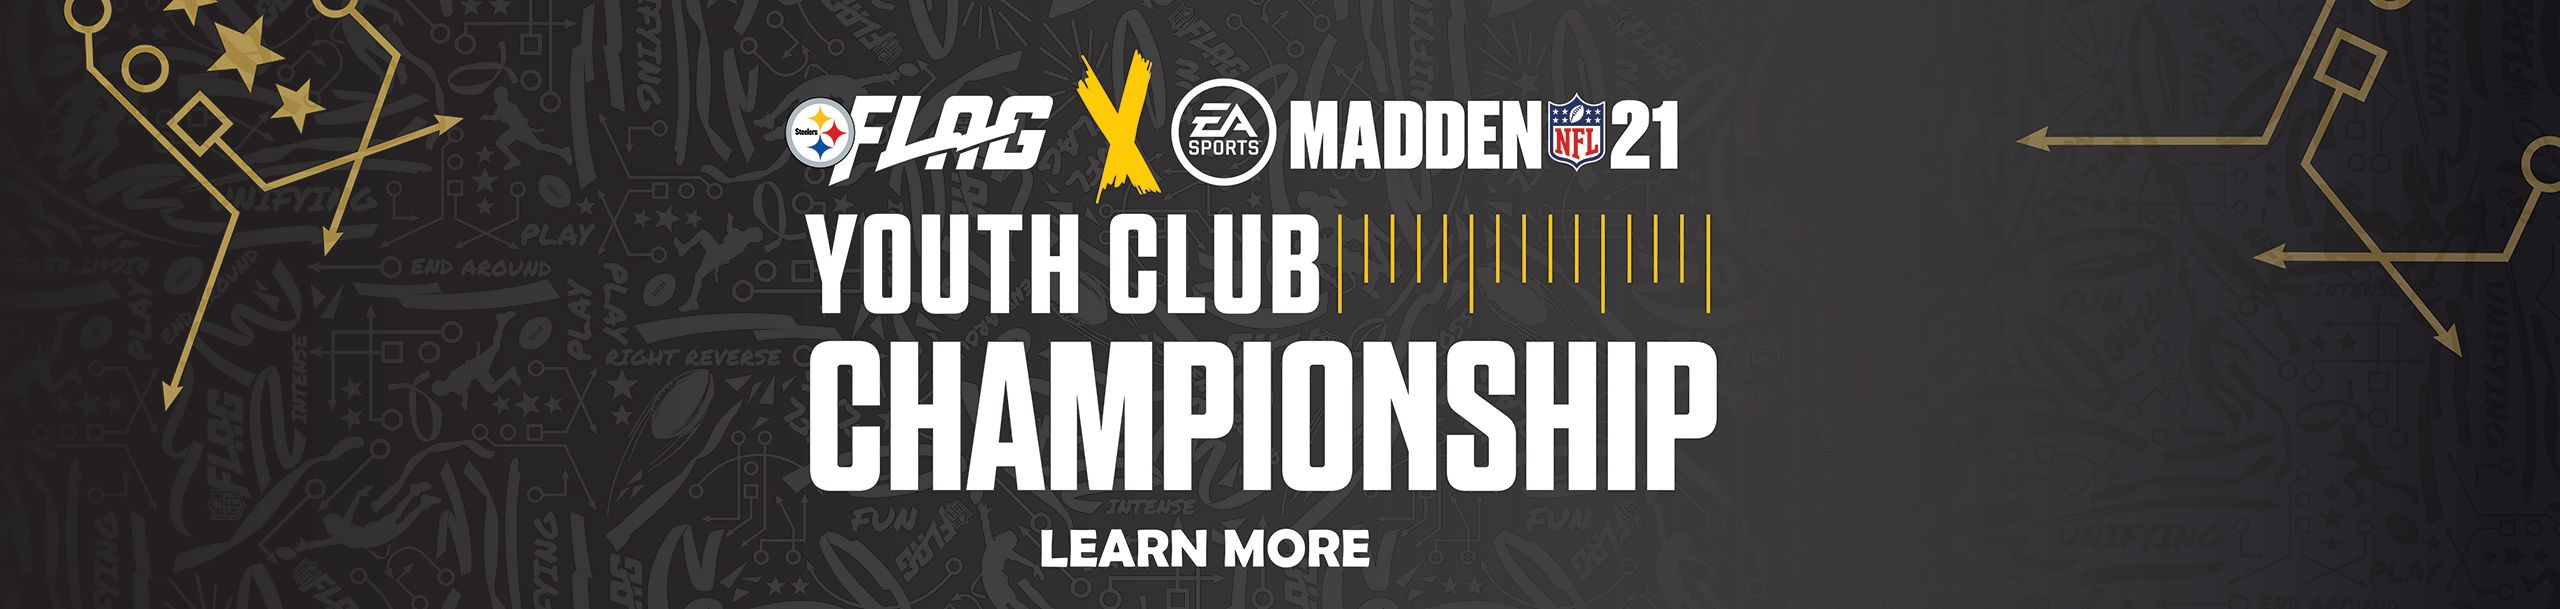 Madden_Youth_Championship_Banner_Ad